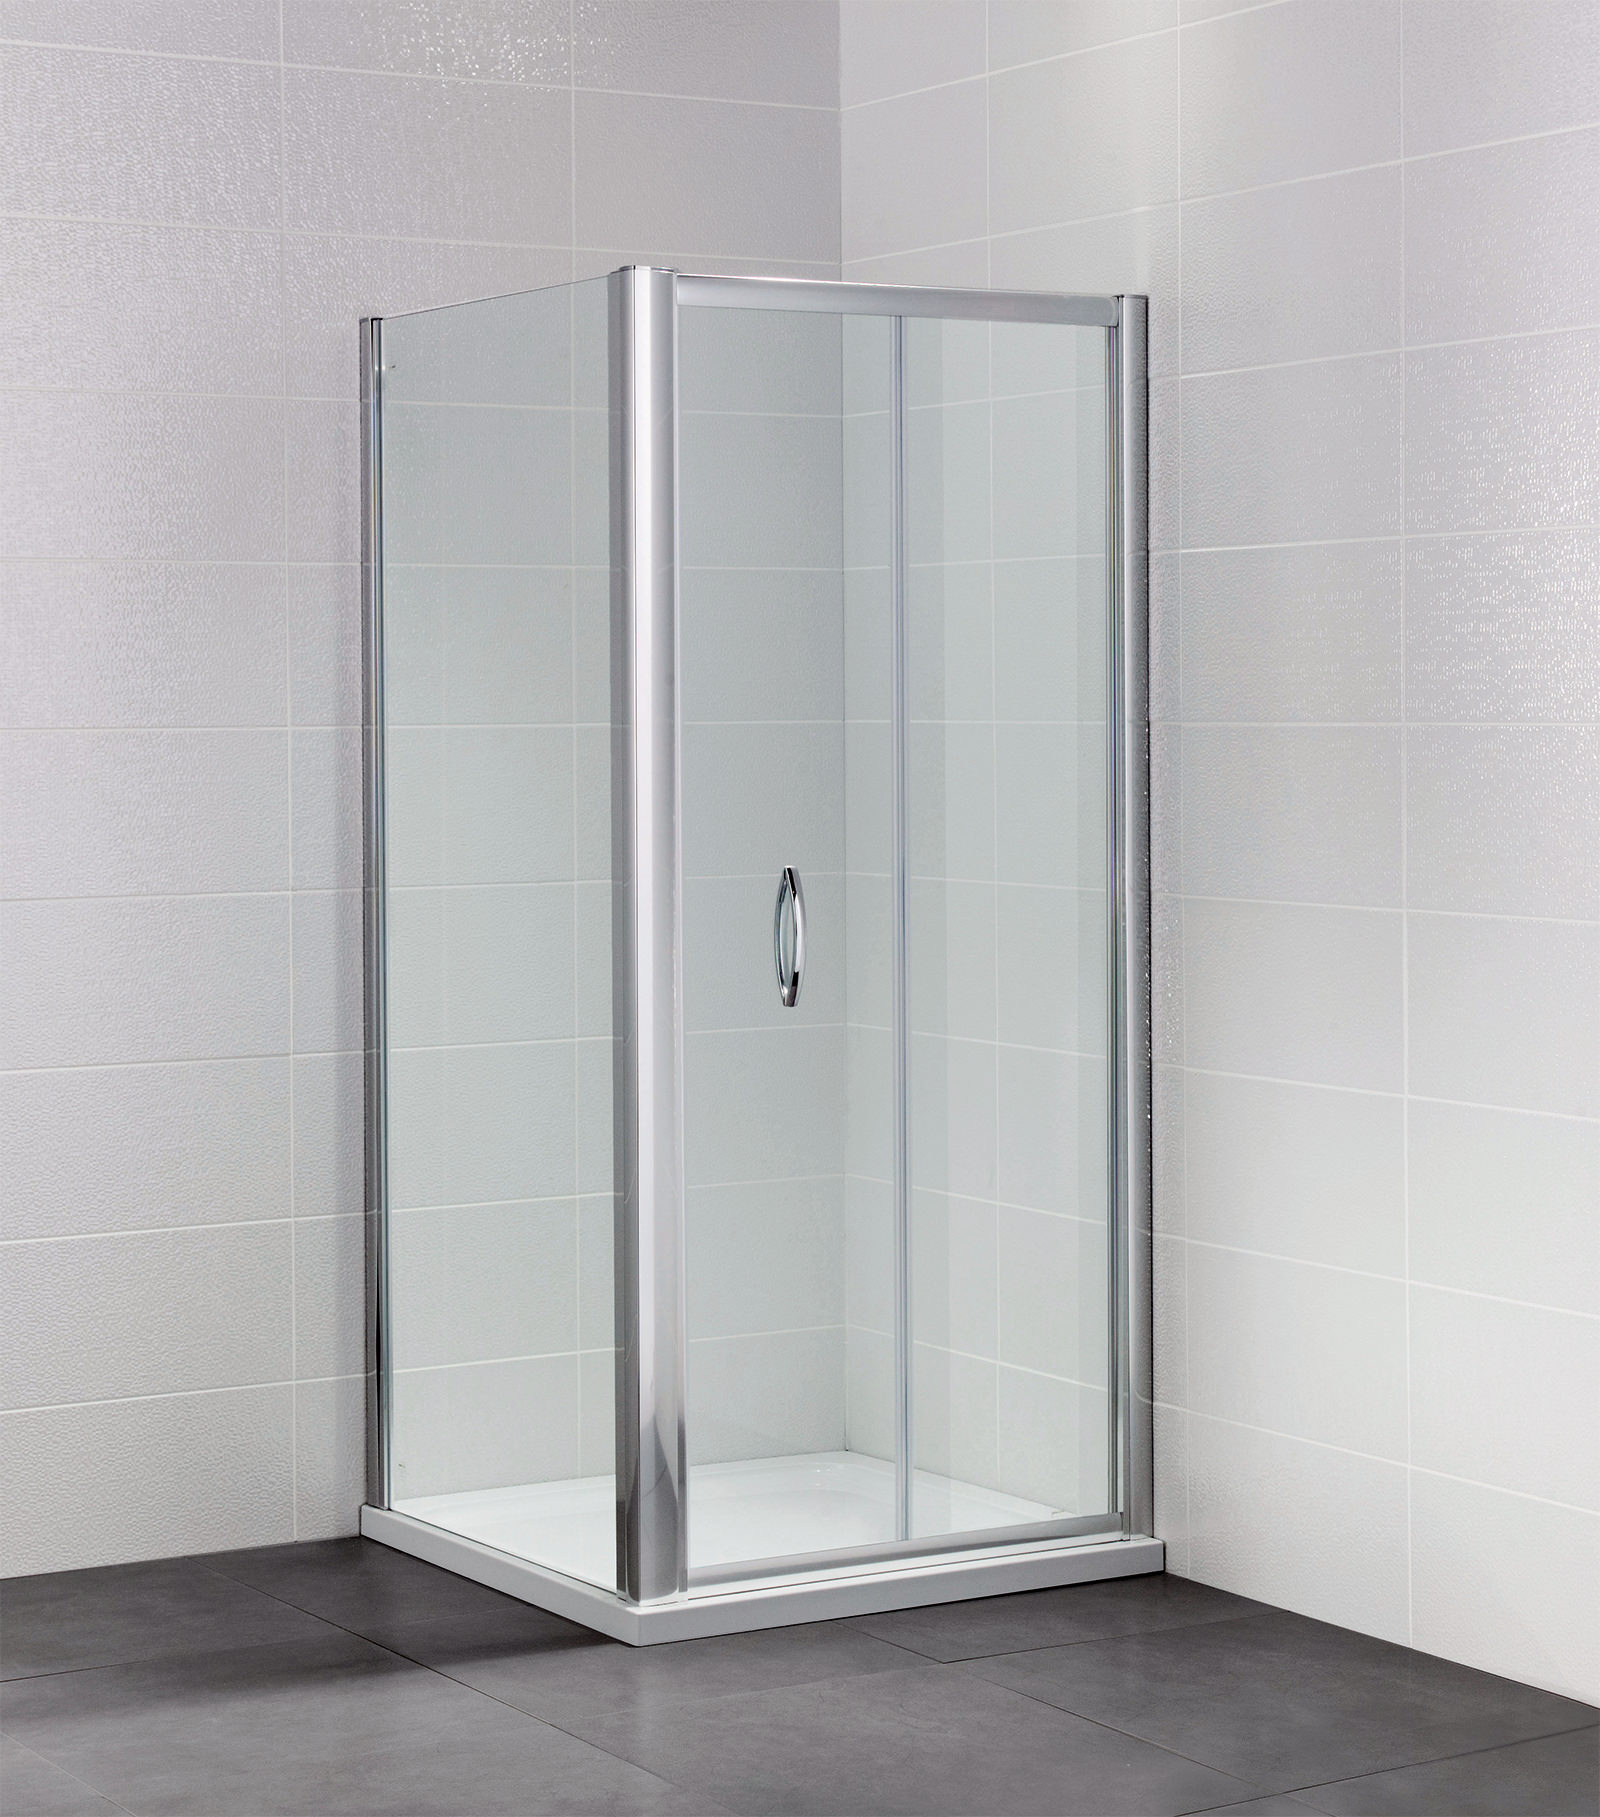 April Identiti2 700 760mm Bifold Shower Door